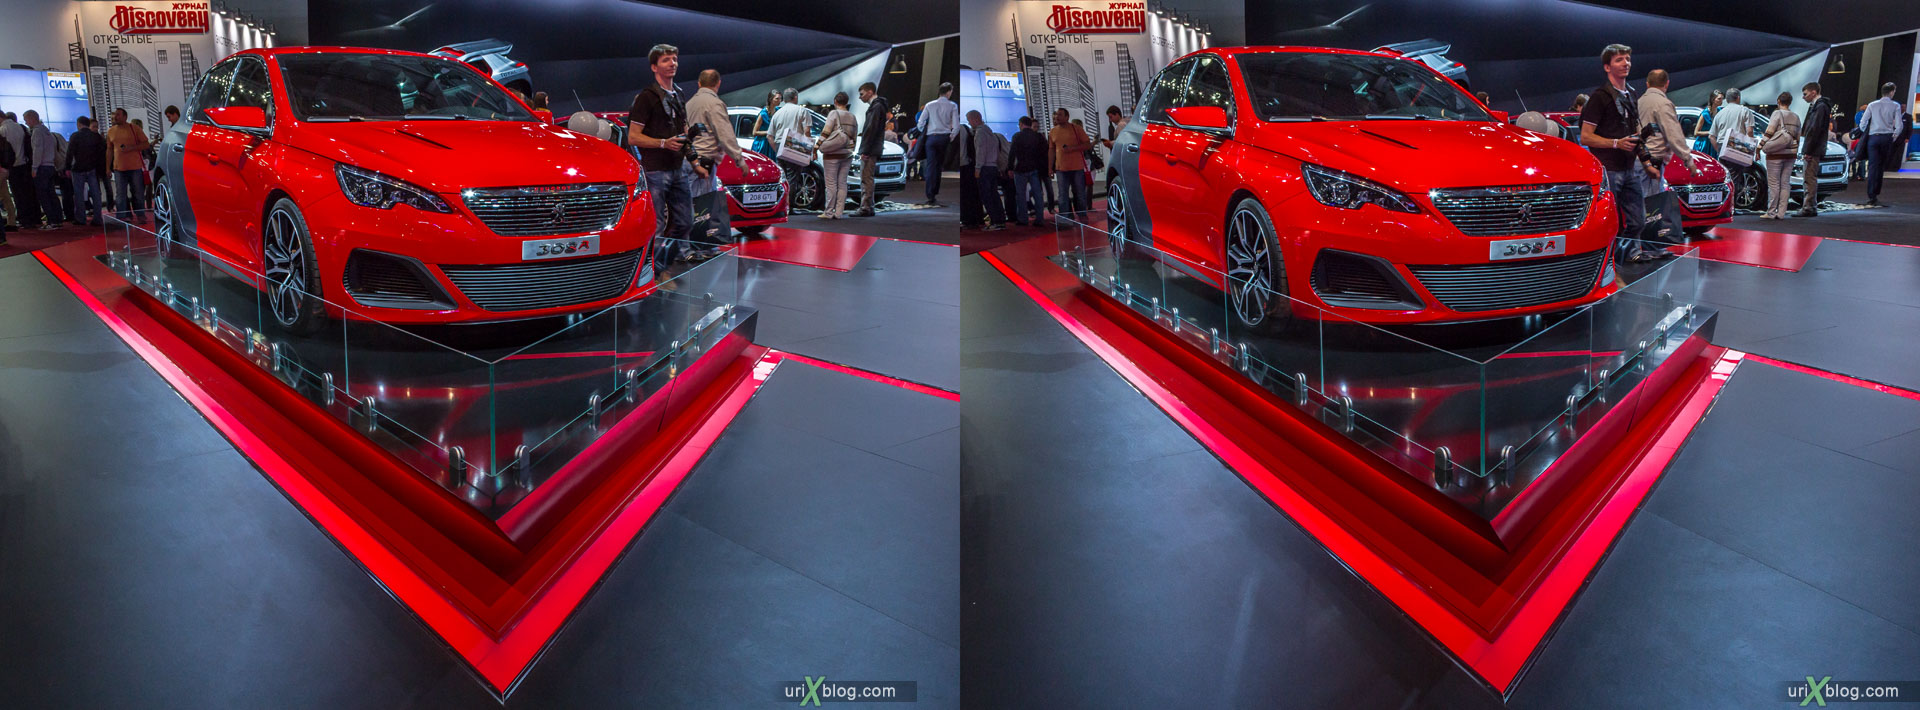 Peugeot 308 R, Moscow International Automobile Salon 2014, MIAS 2014, girls, models, Crocus Expo, Moscow, Russia, 3D, stereo pair, cross-eyed, crossview, cross view stereo pair, stereoscopic, 2014